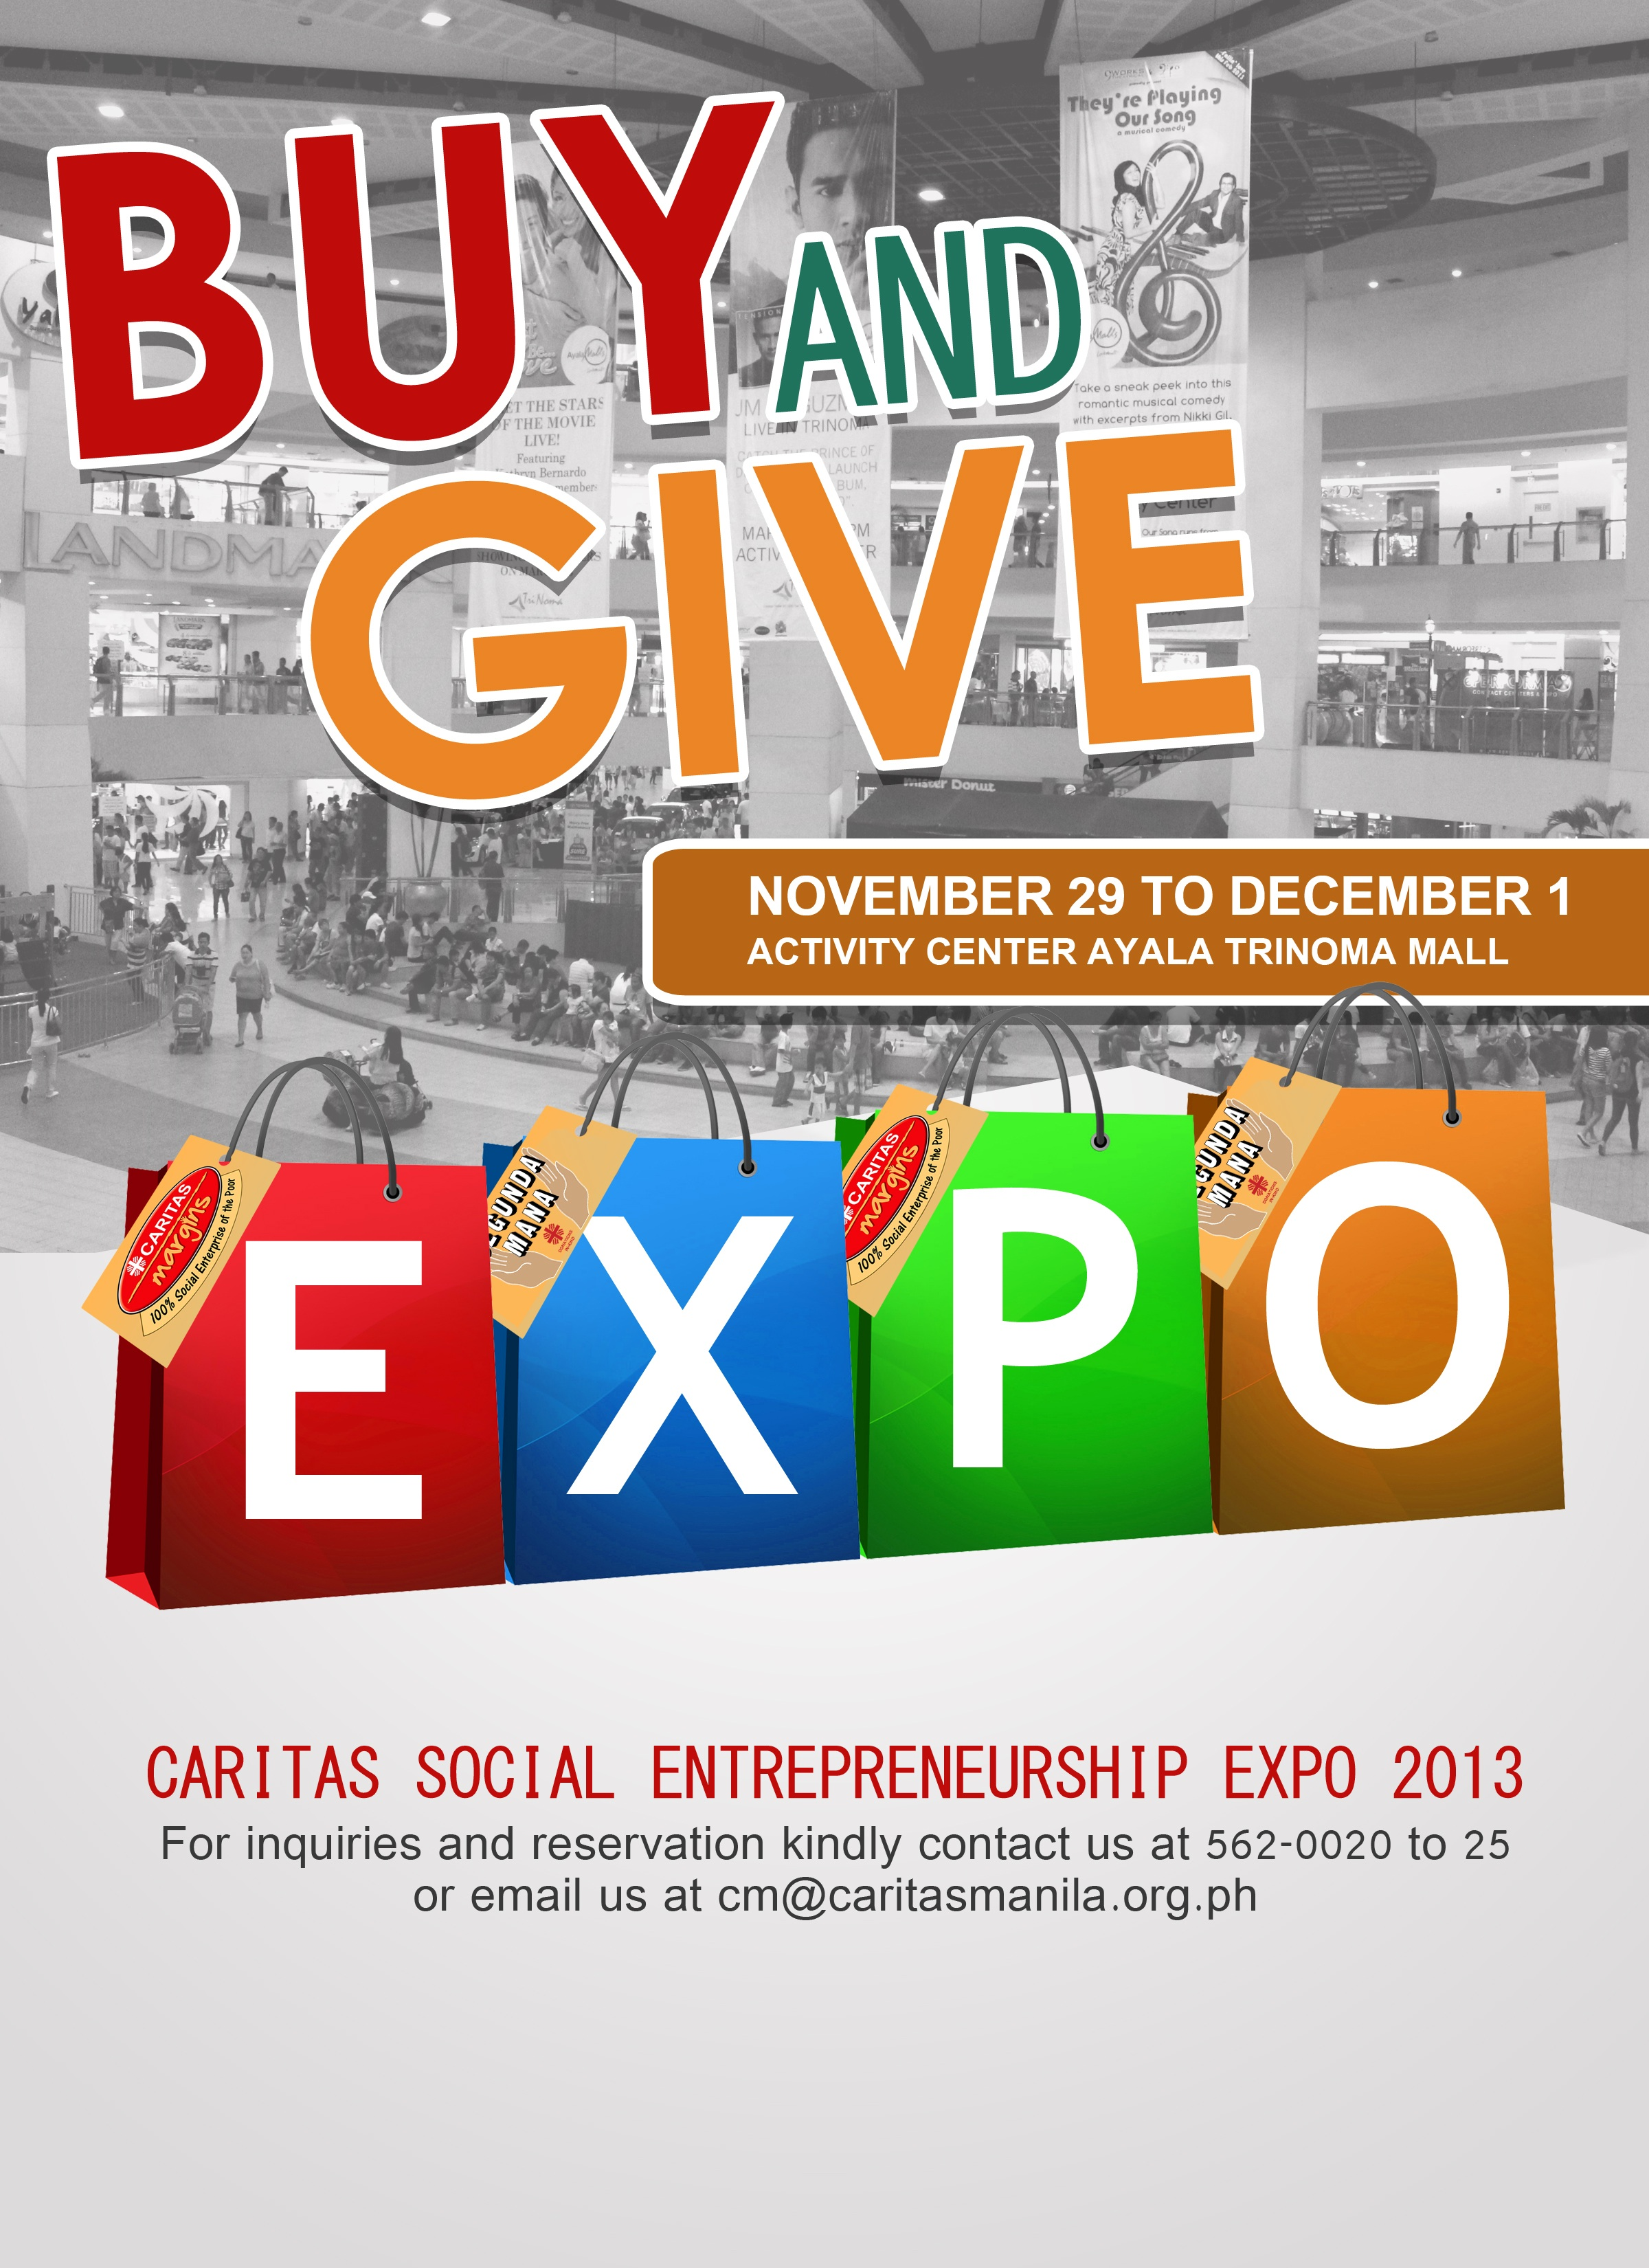 Help Build Lives Thru Caritas Manila's BUY and GIVE Expo 2013